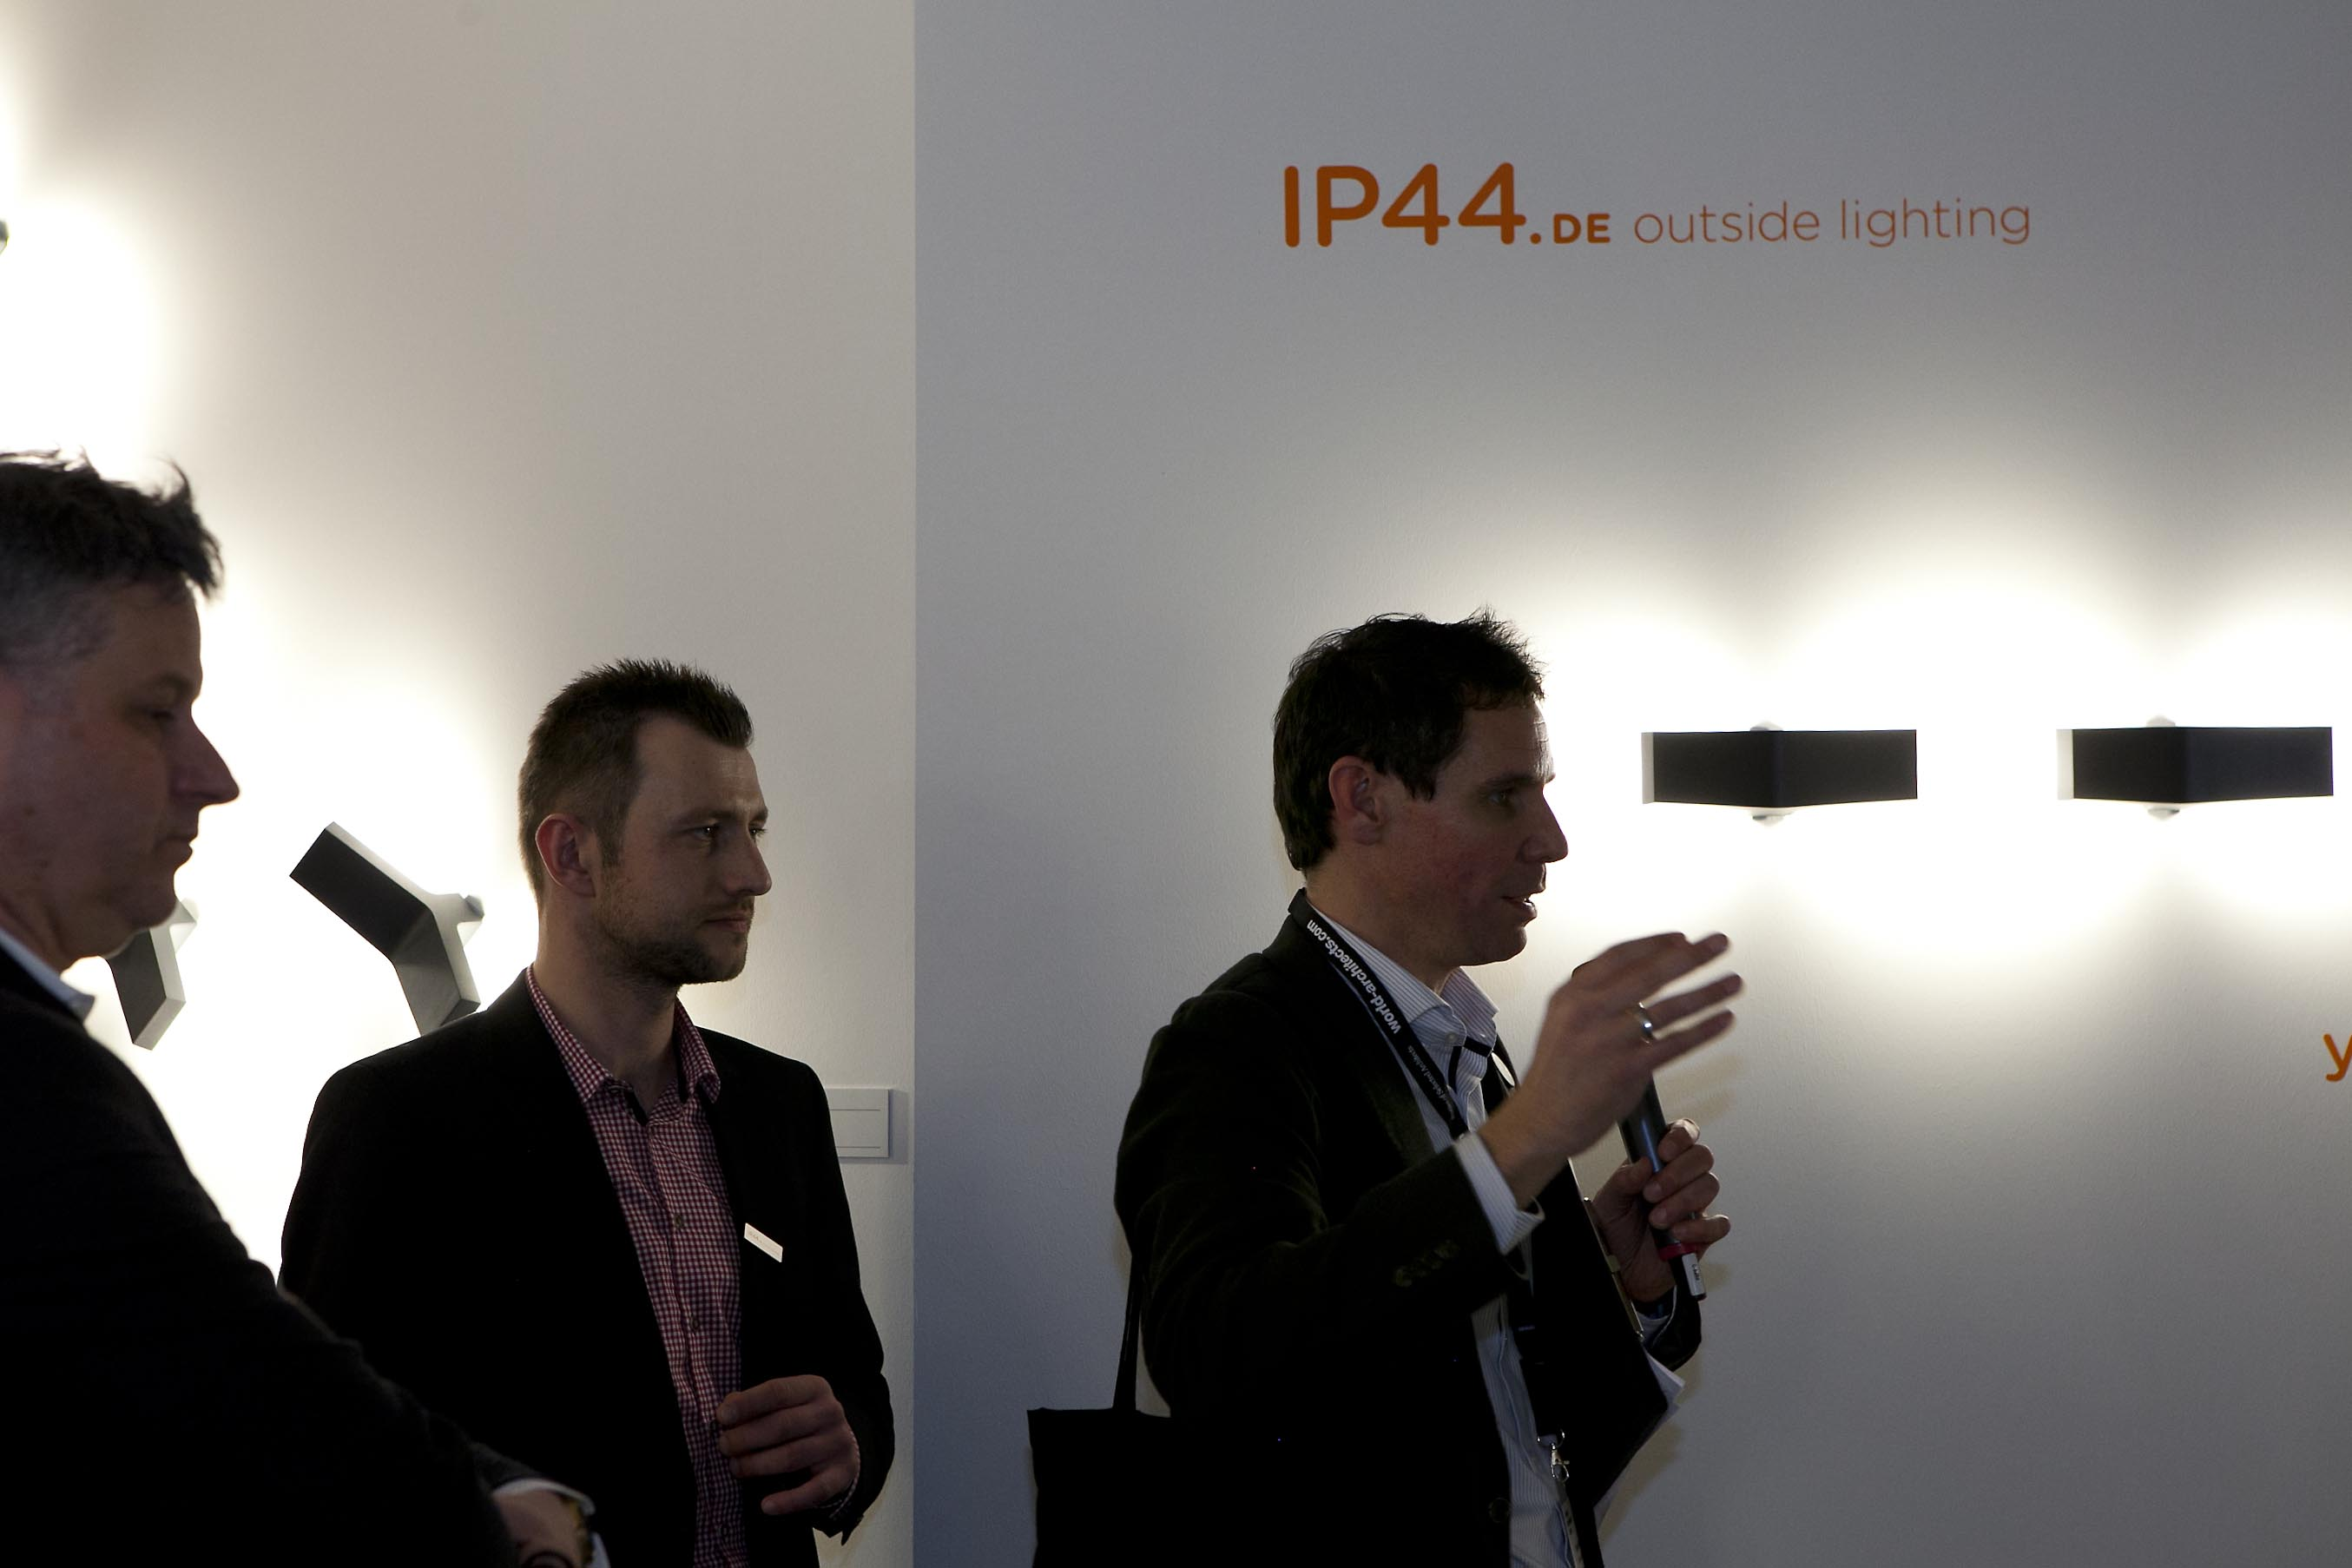 «Urban lighting» Tour at IP44